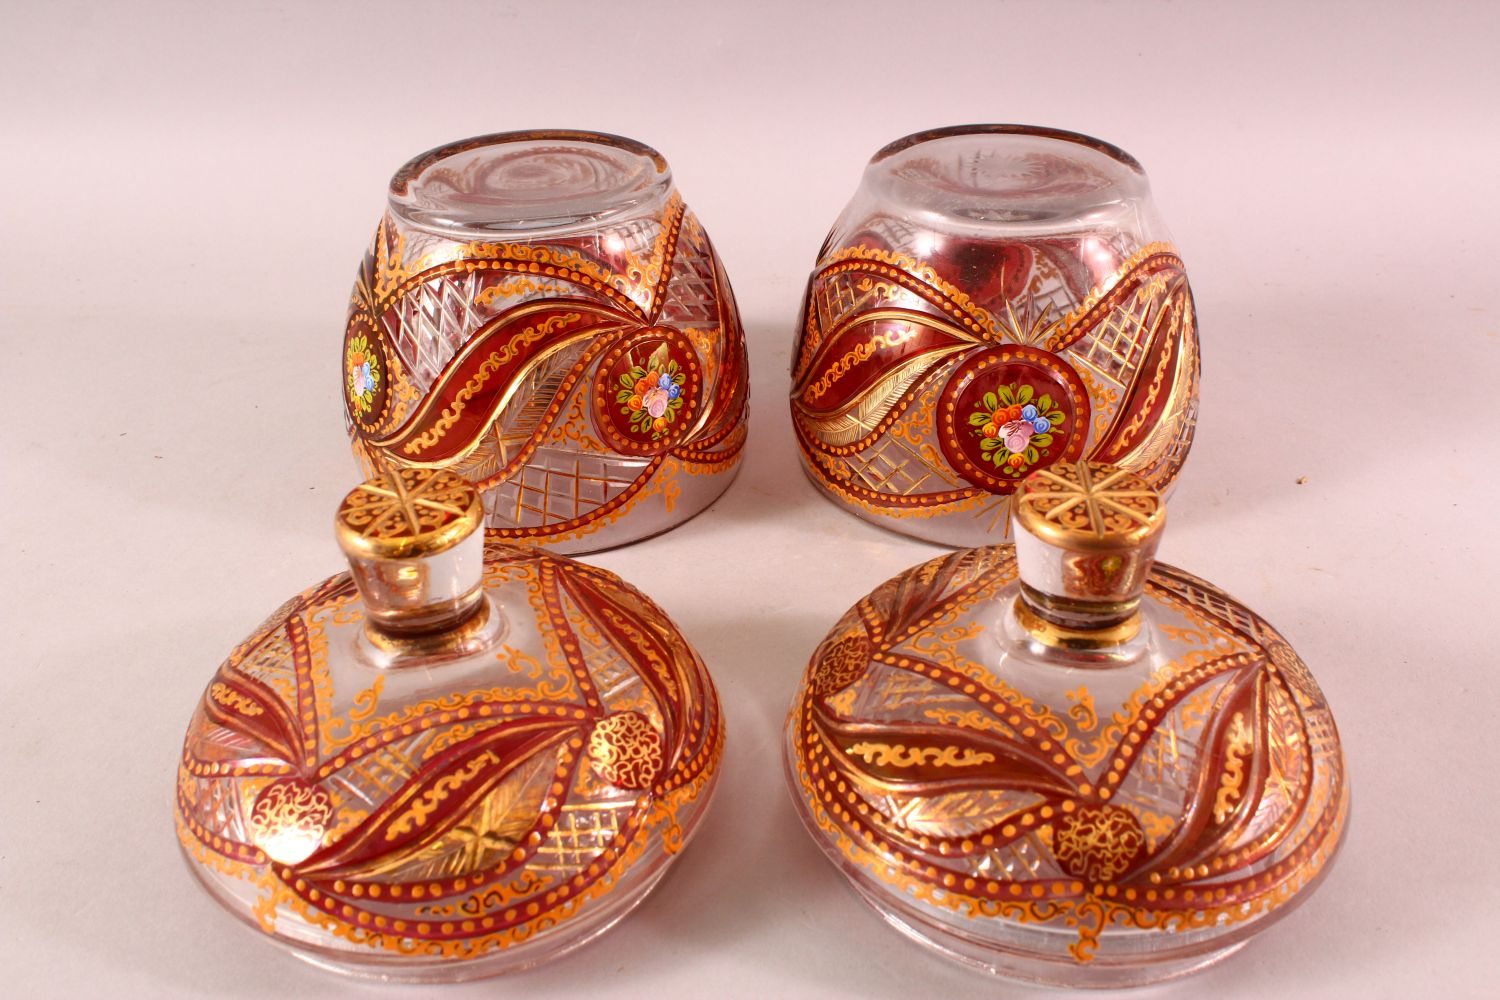 A PAIR OF BOHEMIAN RED ENAMELLED GLASS JARS, each with enamel and gilt work, 20cm each - Image 4 of 4